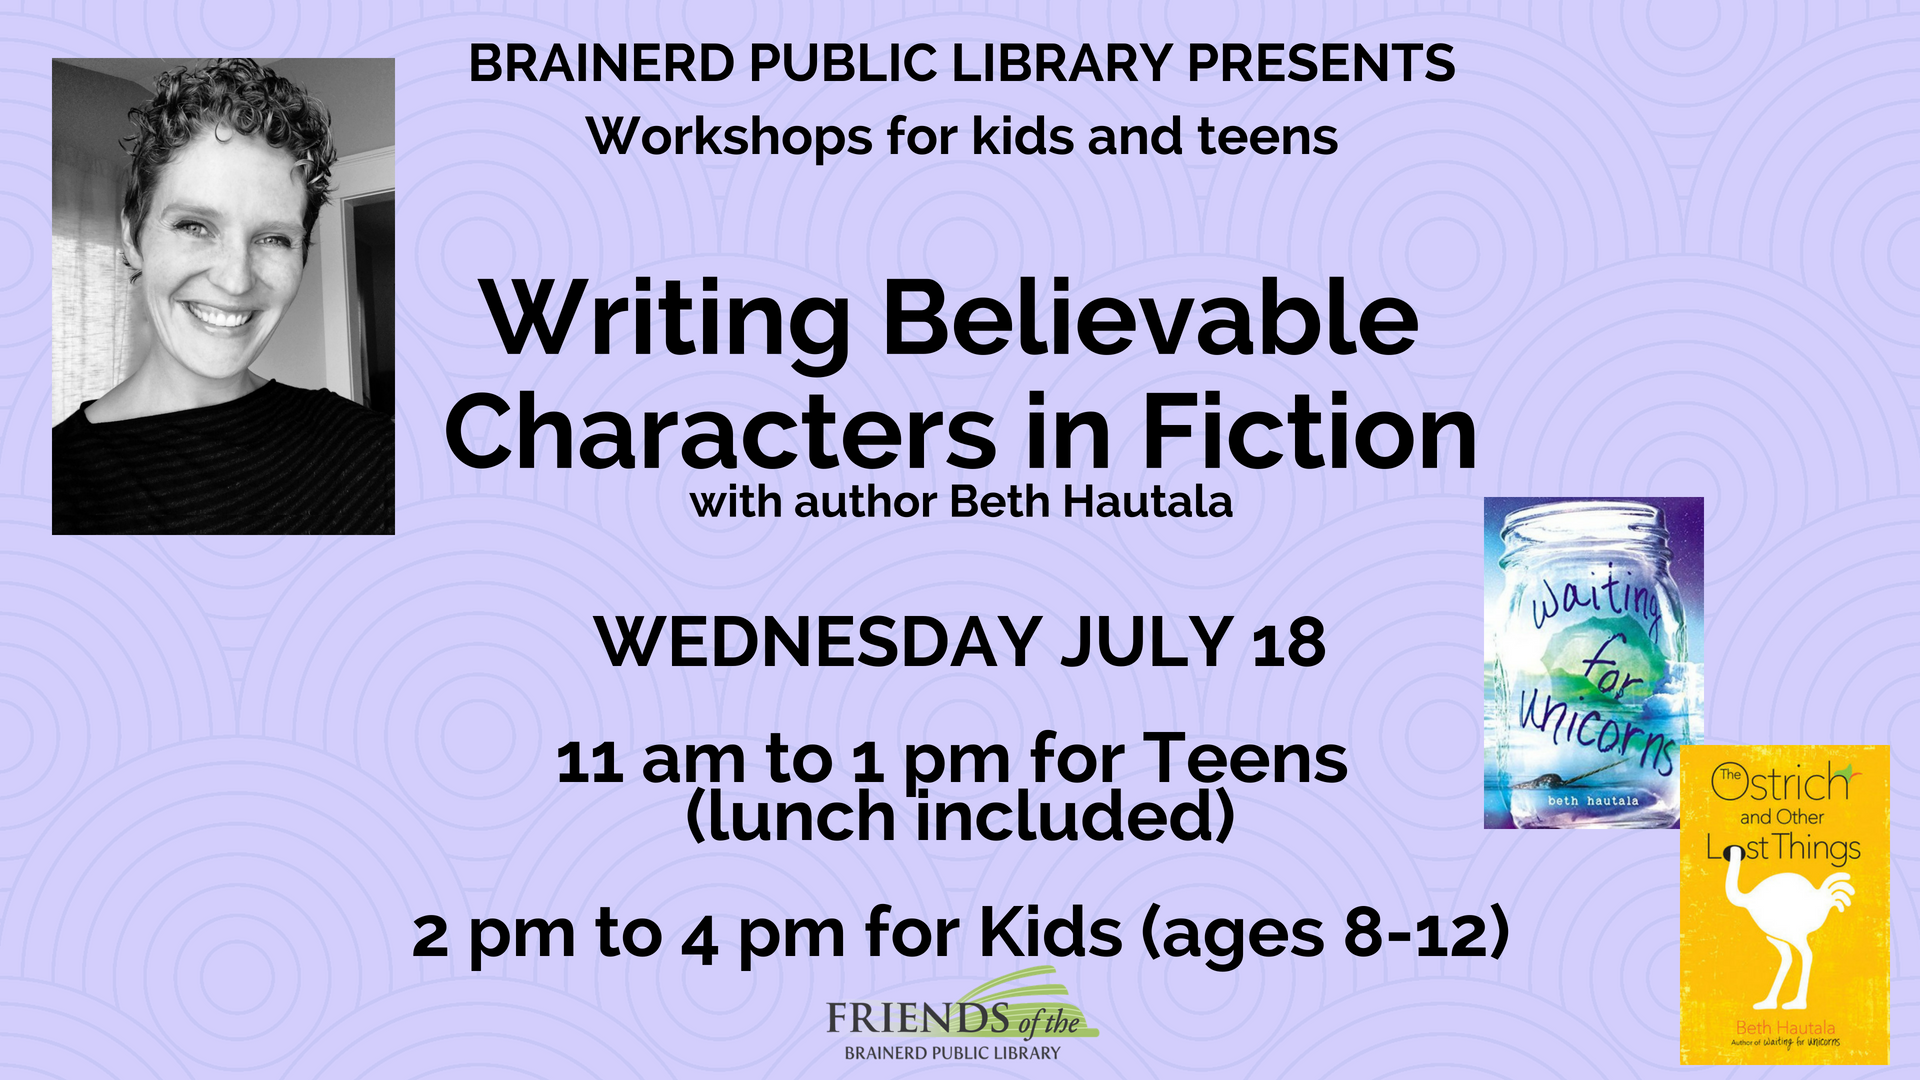 Teen Writing Workshop: Writing Believable Characters in Fiction